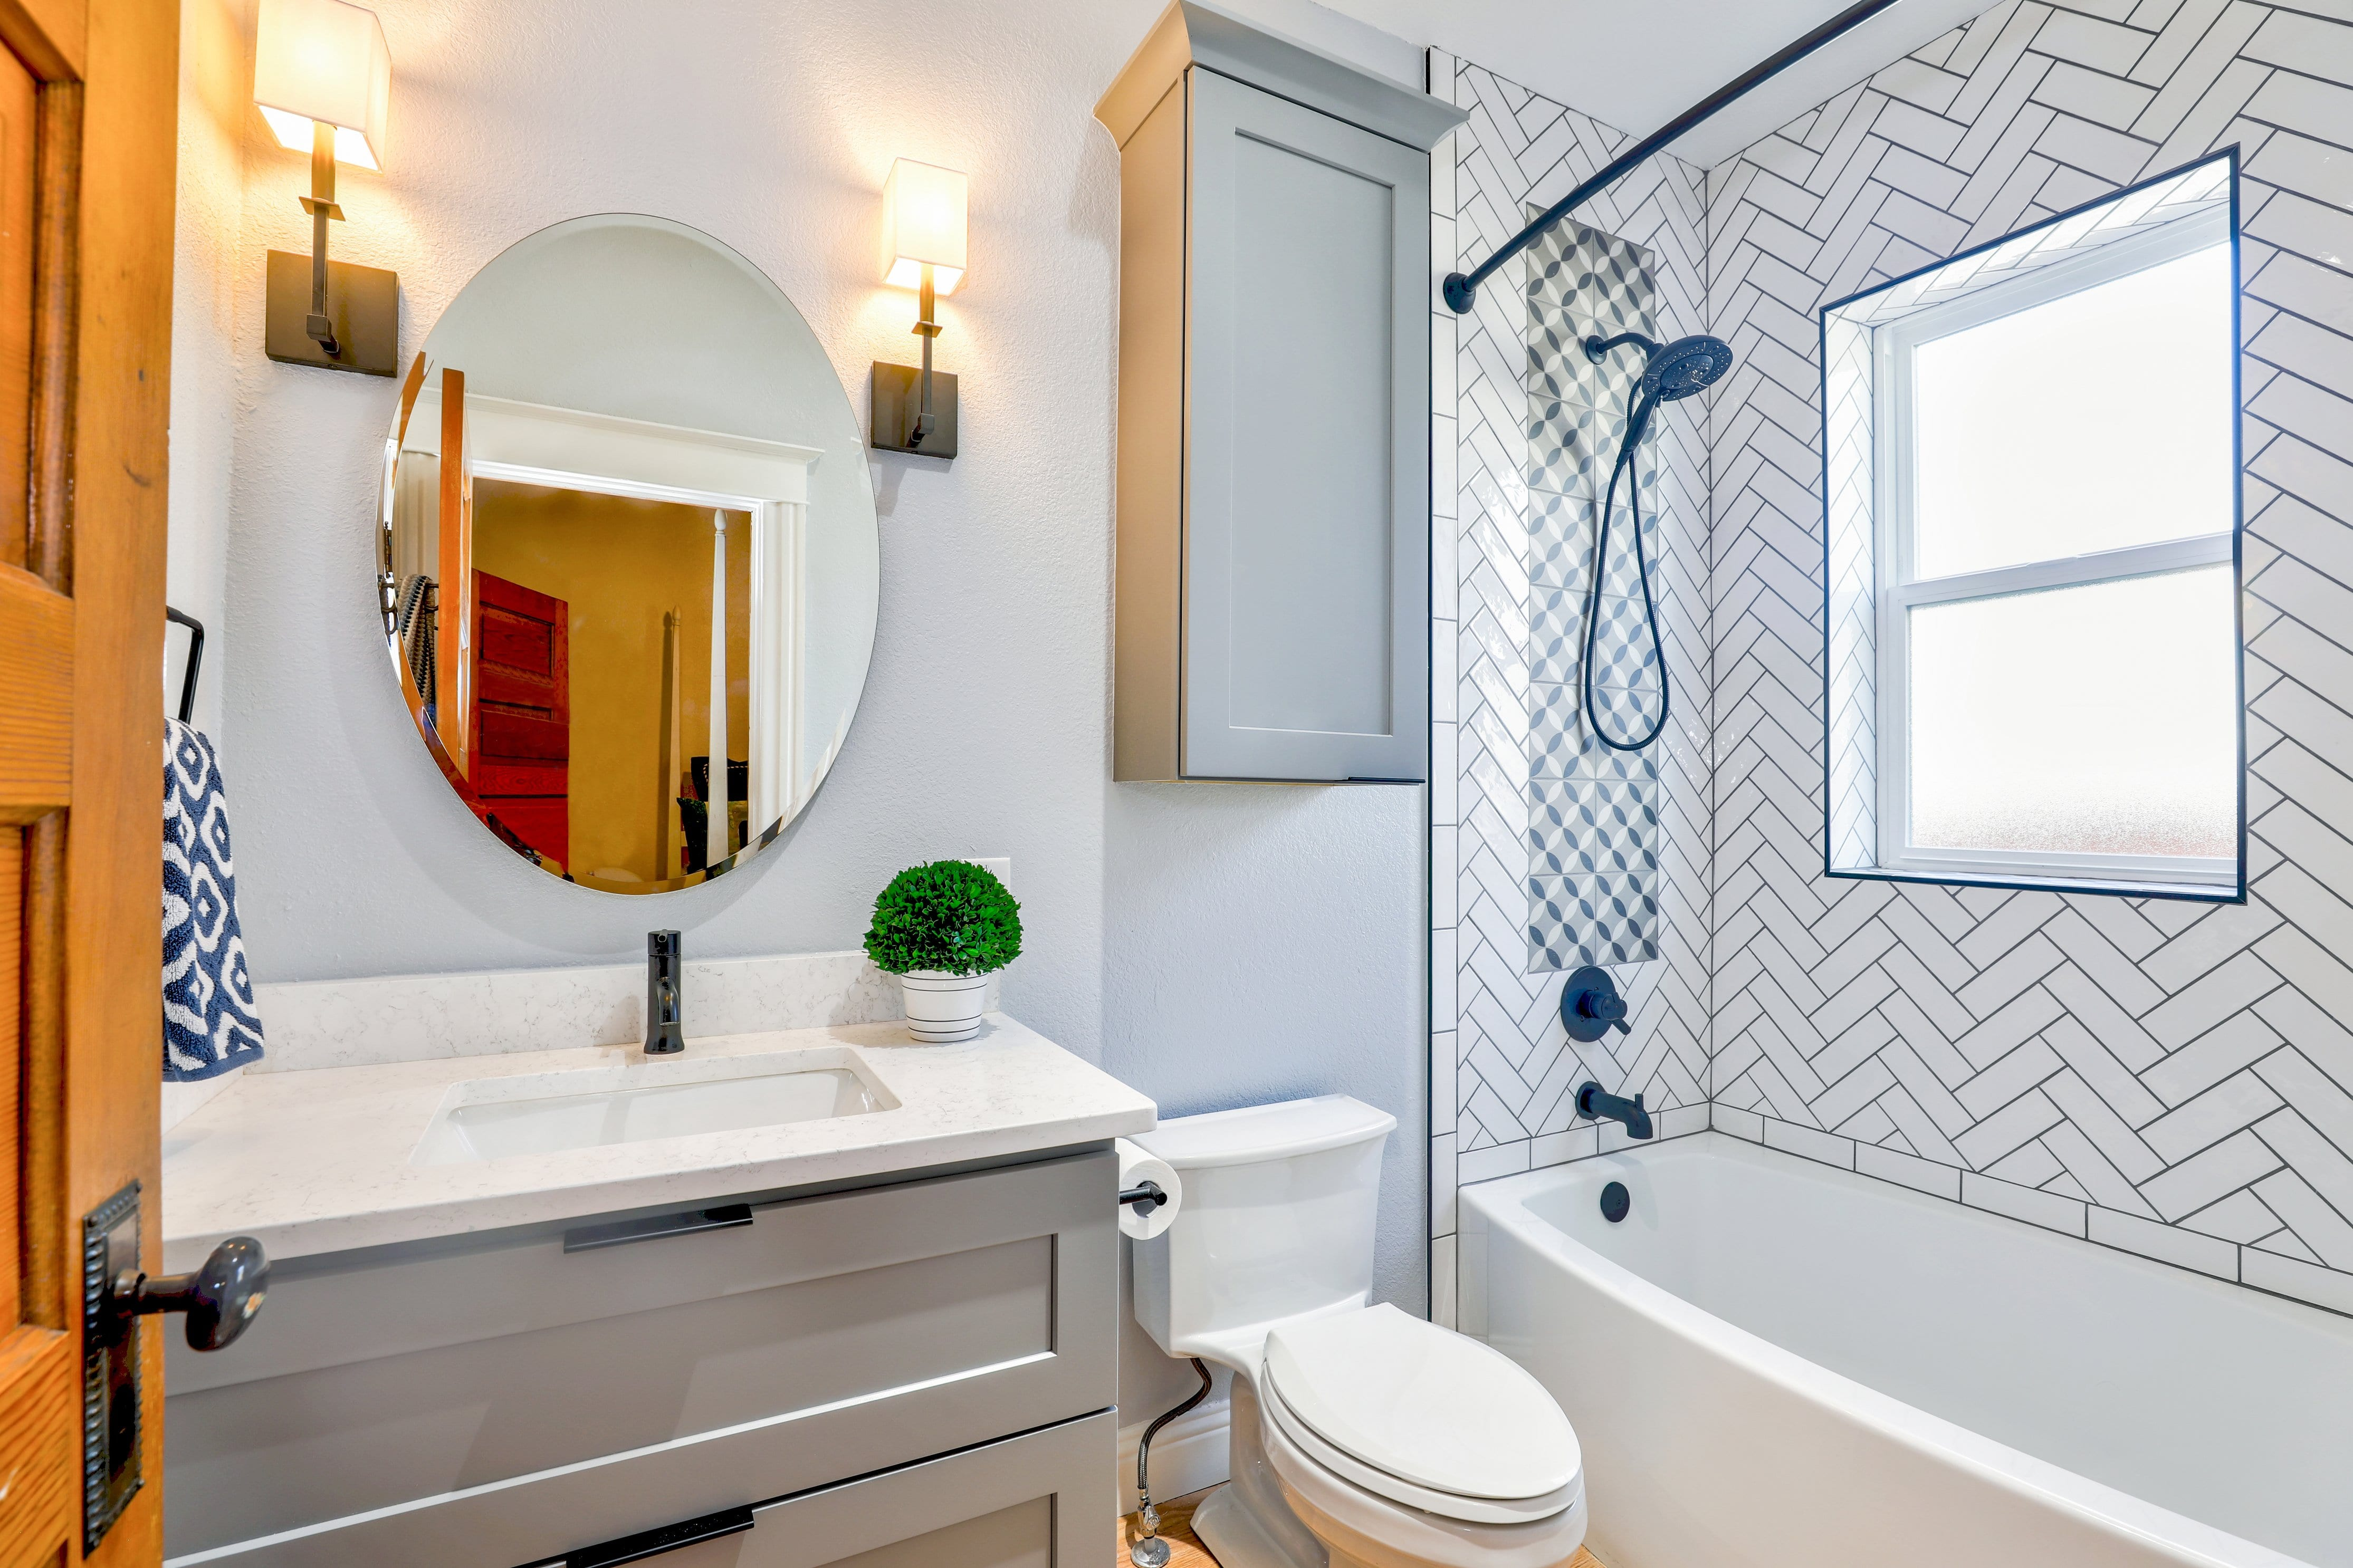 5 Fun and Unique Bathroom Decorating Ideas for Kids | Frame ...